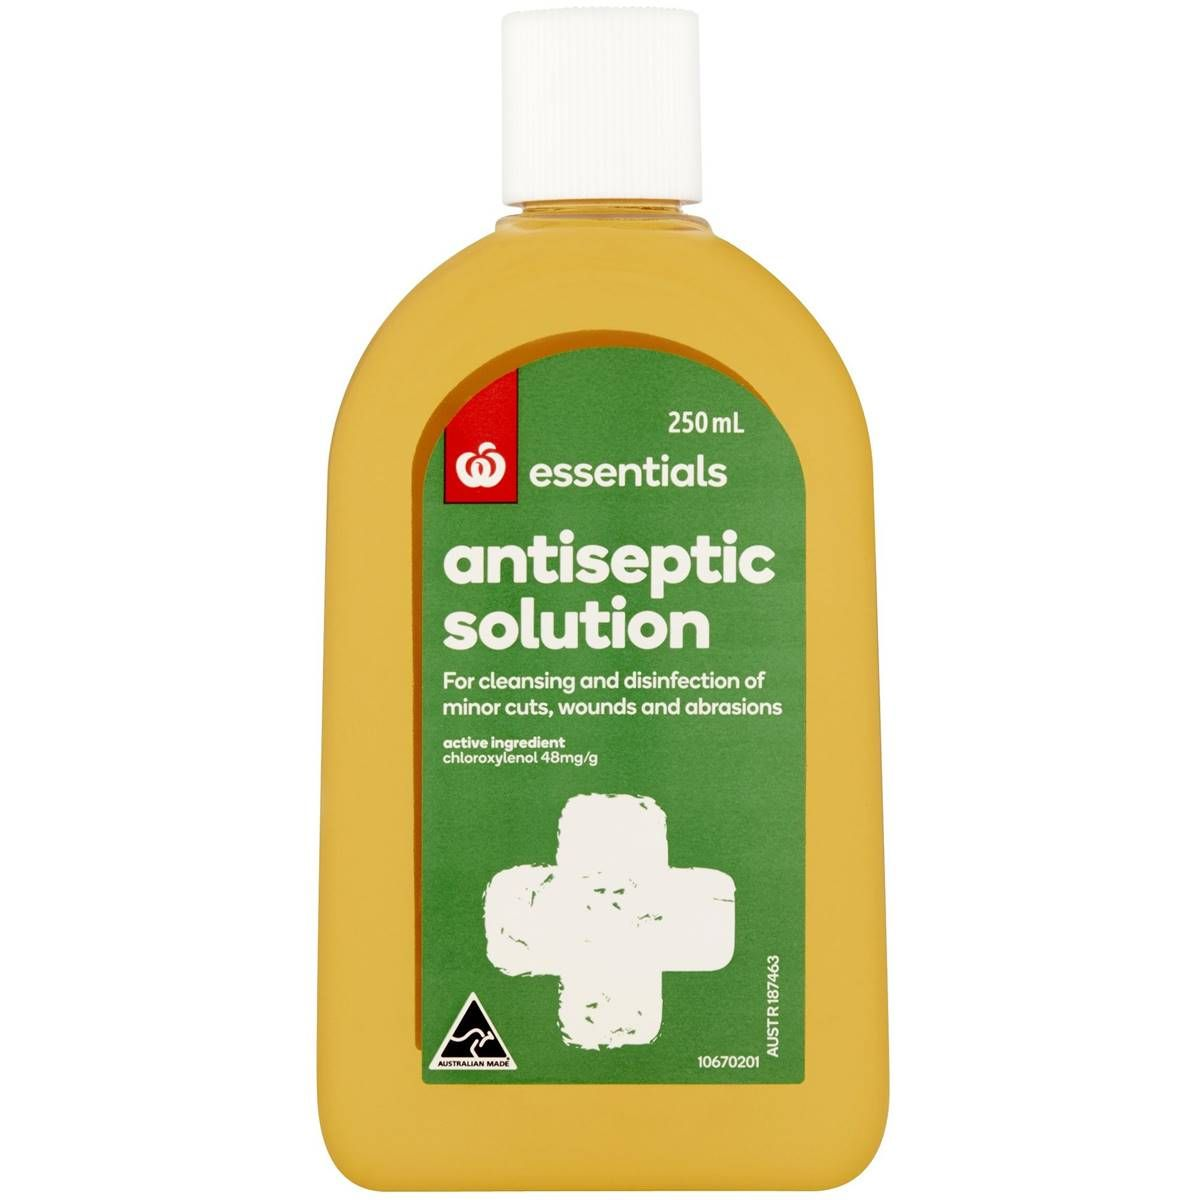 Essentials Antiseptic Solution Image Antiseptic Online